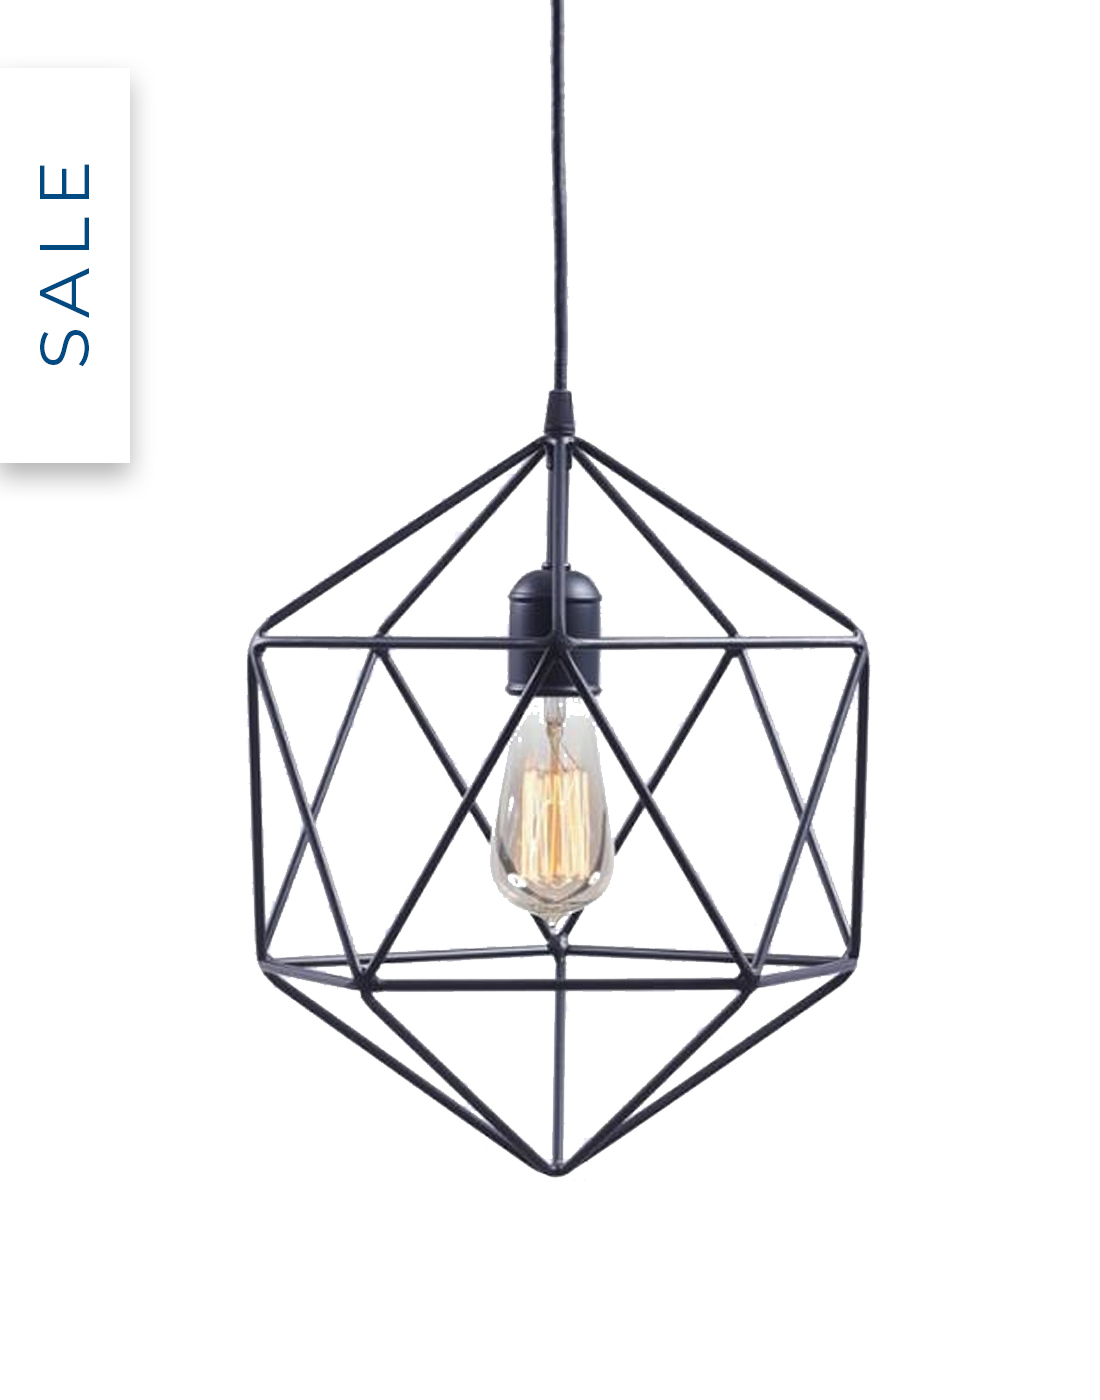 Geometric pendant by Schwung Home with 65% off